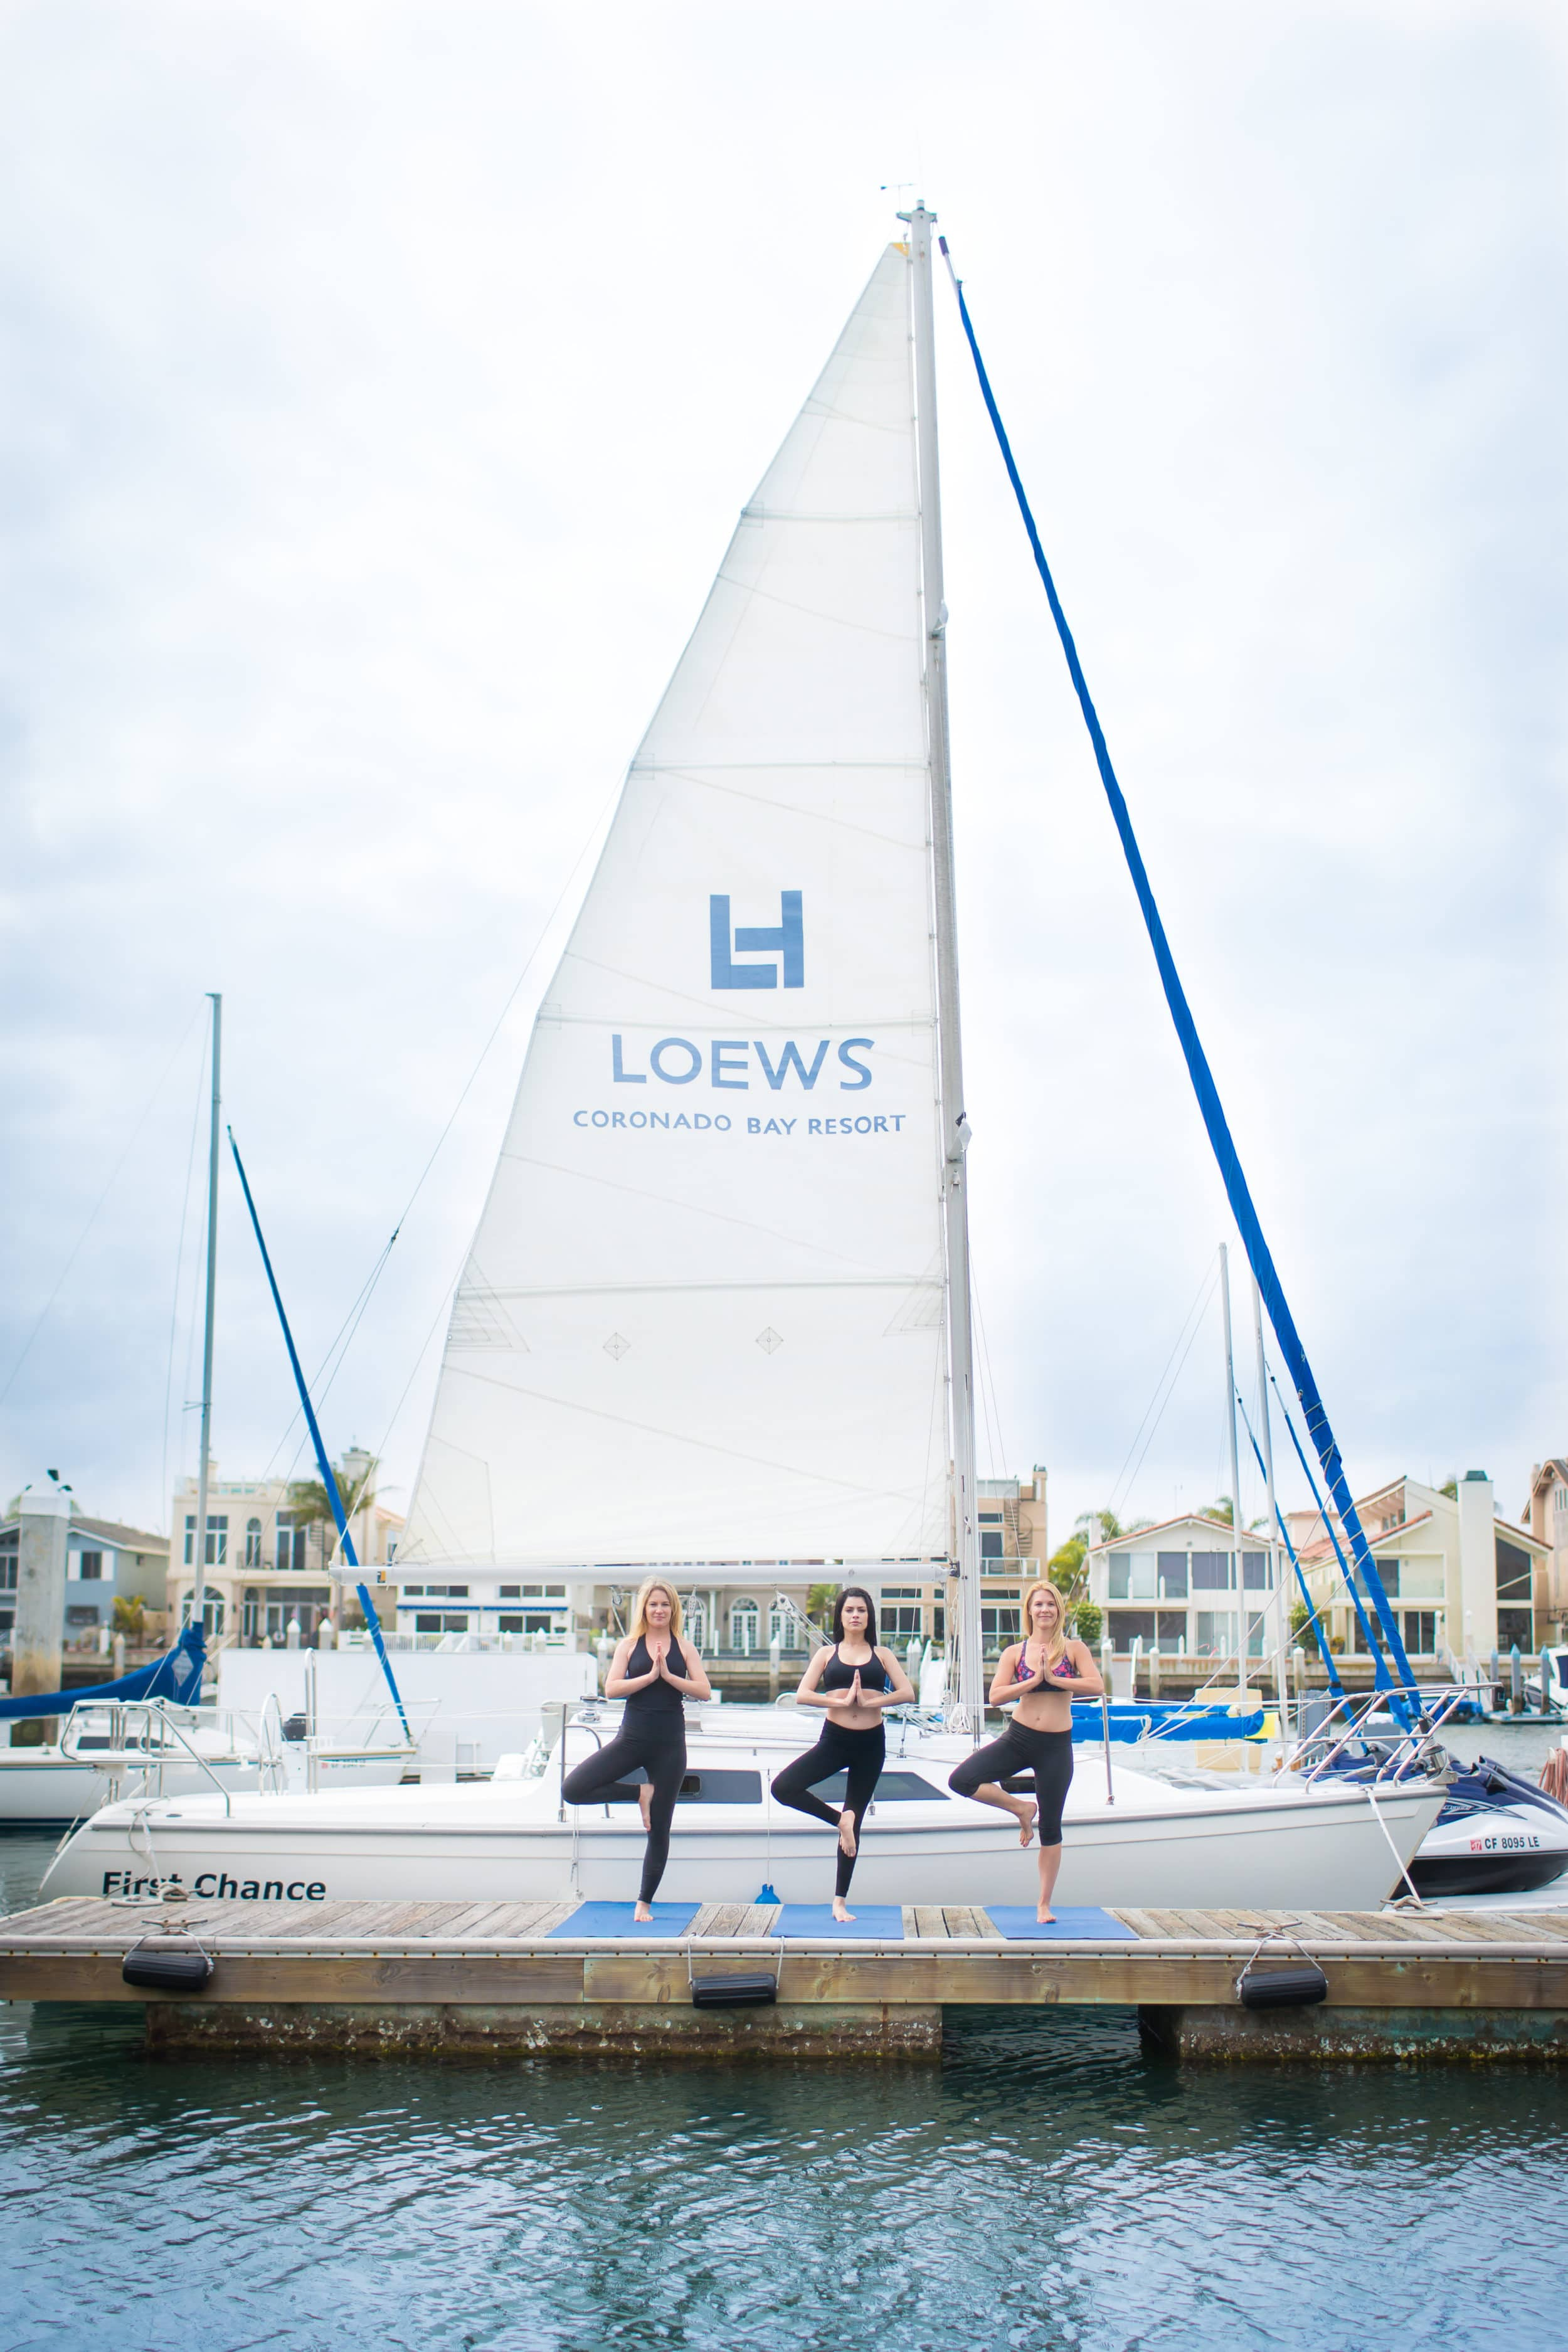 Do yoga on the beach or at the marina at Loews Coronado Bay Resort